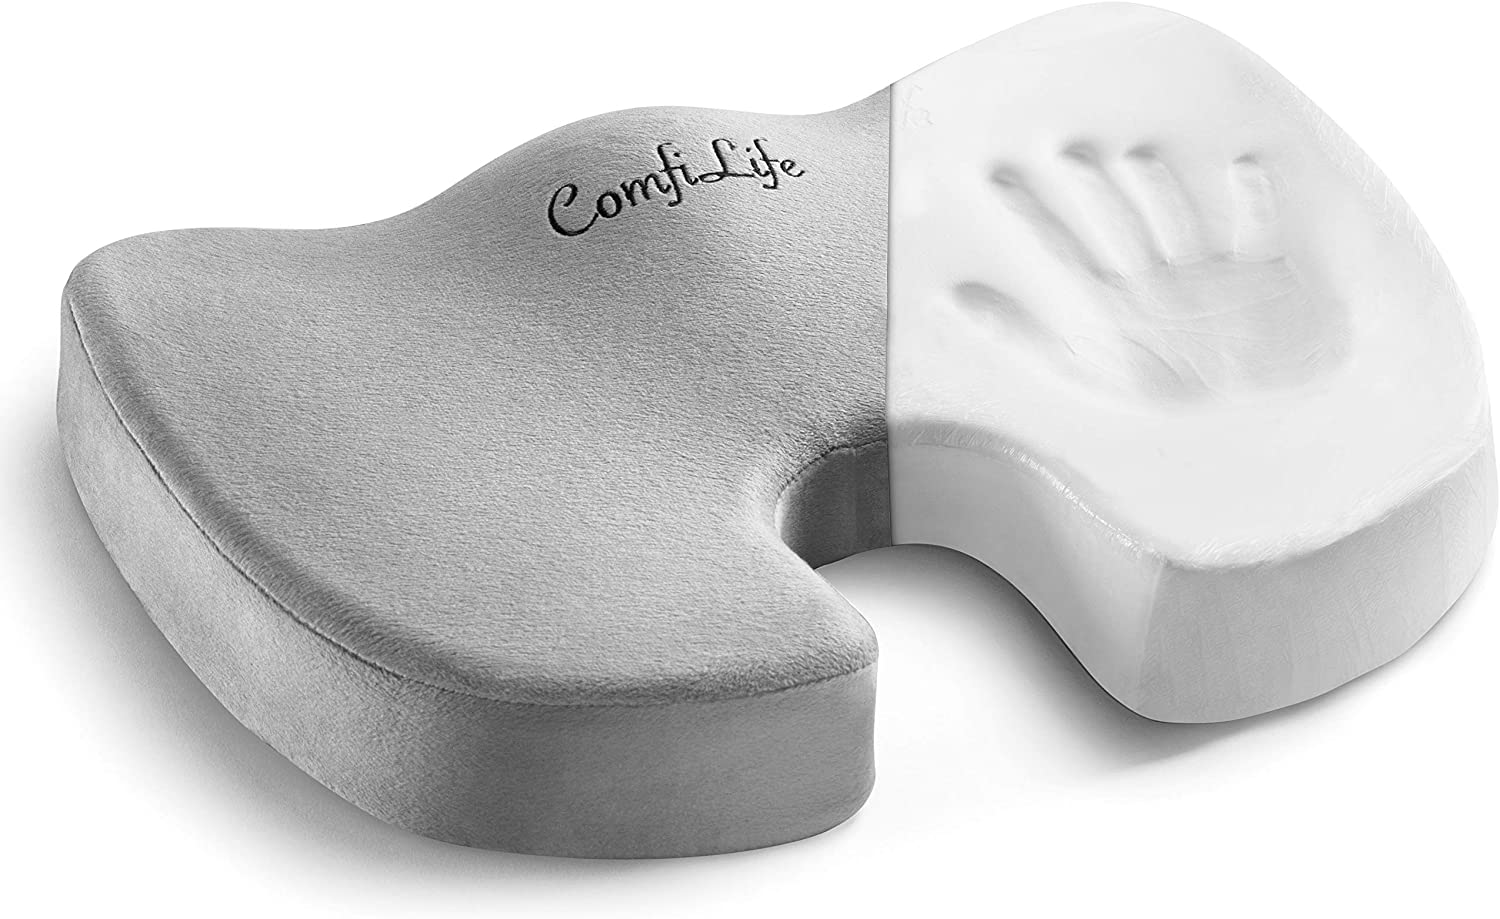 ComfiLife Premium Comfort Seat Cushion- Best for elderly